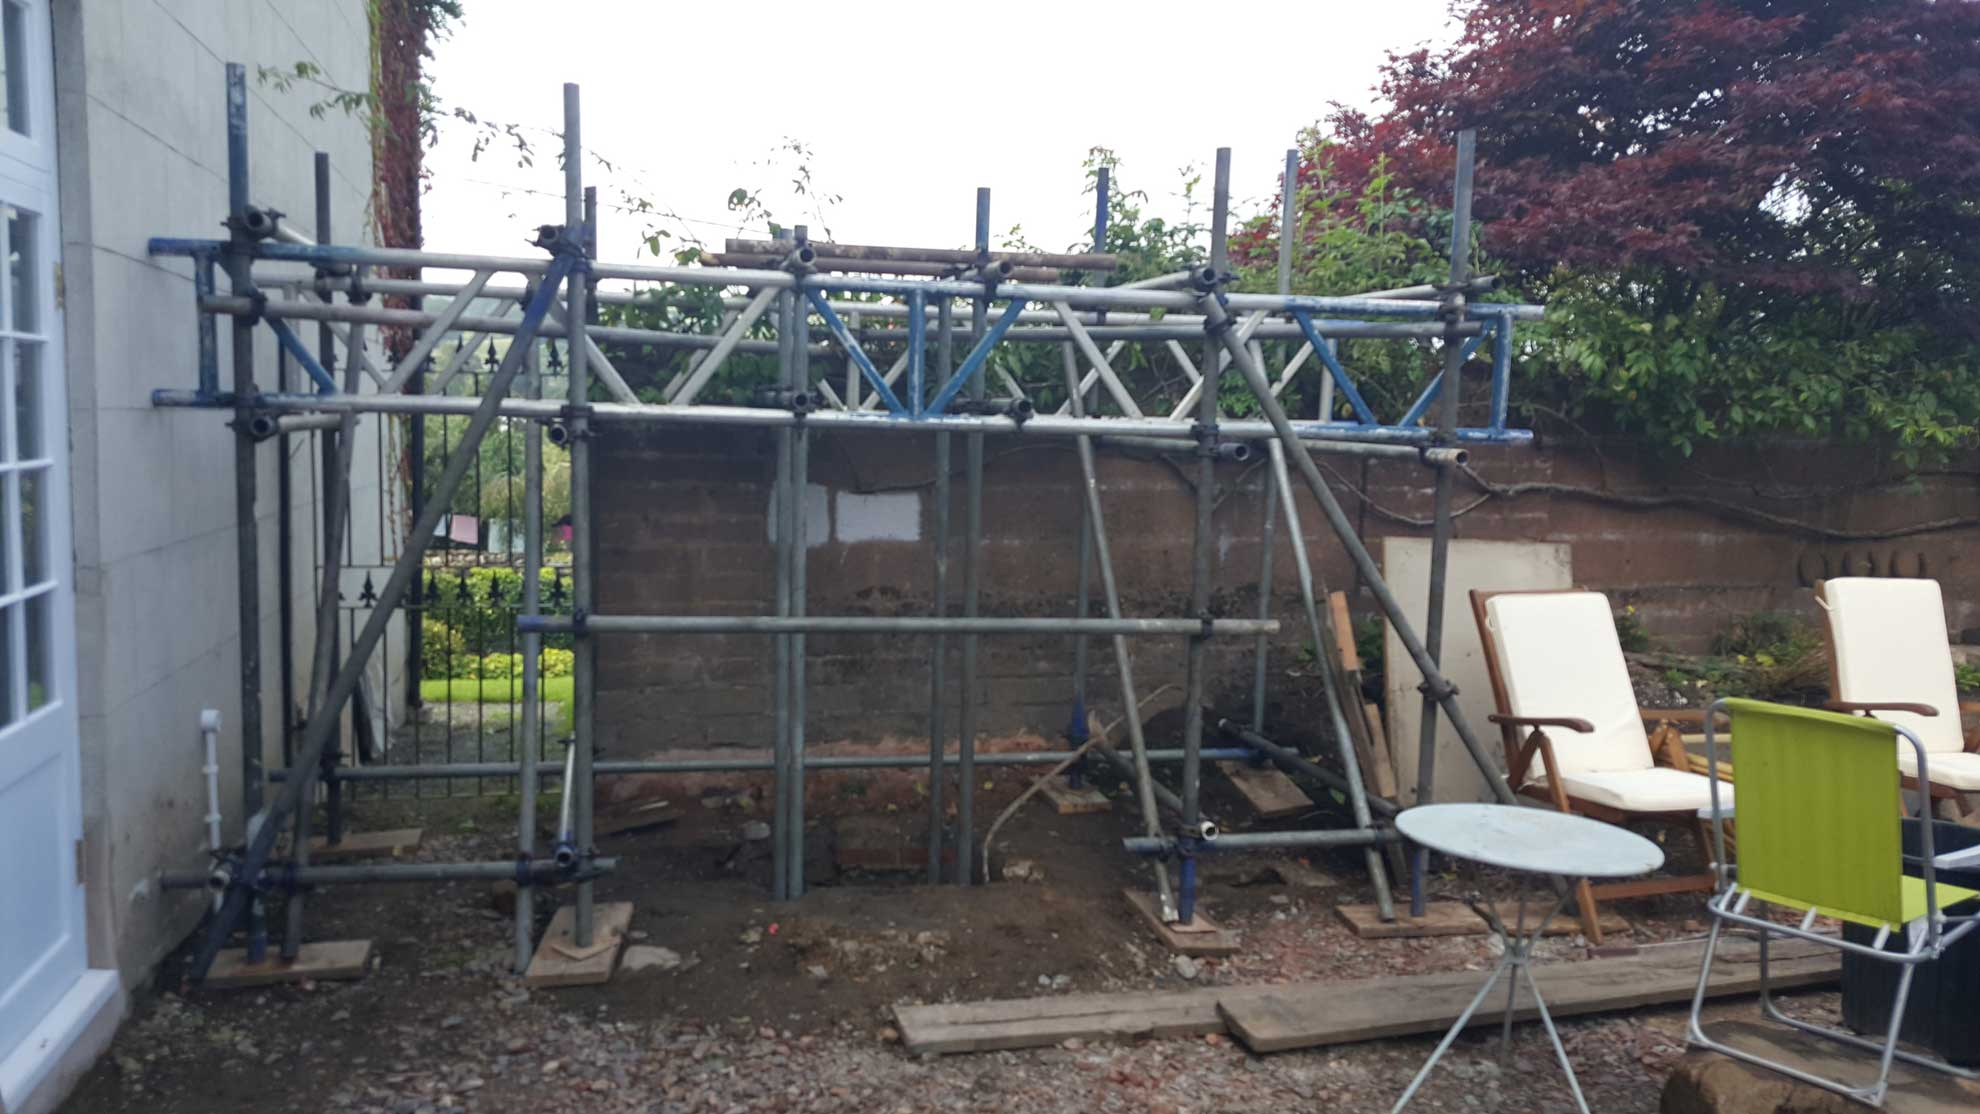 Birdcage Scaffolding Exeter and Tiverton - Rapid Scaffold Ltd